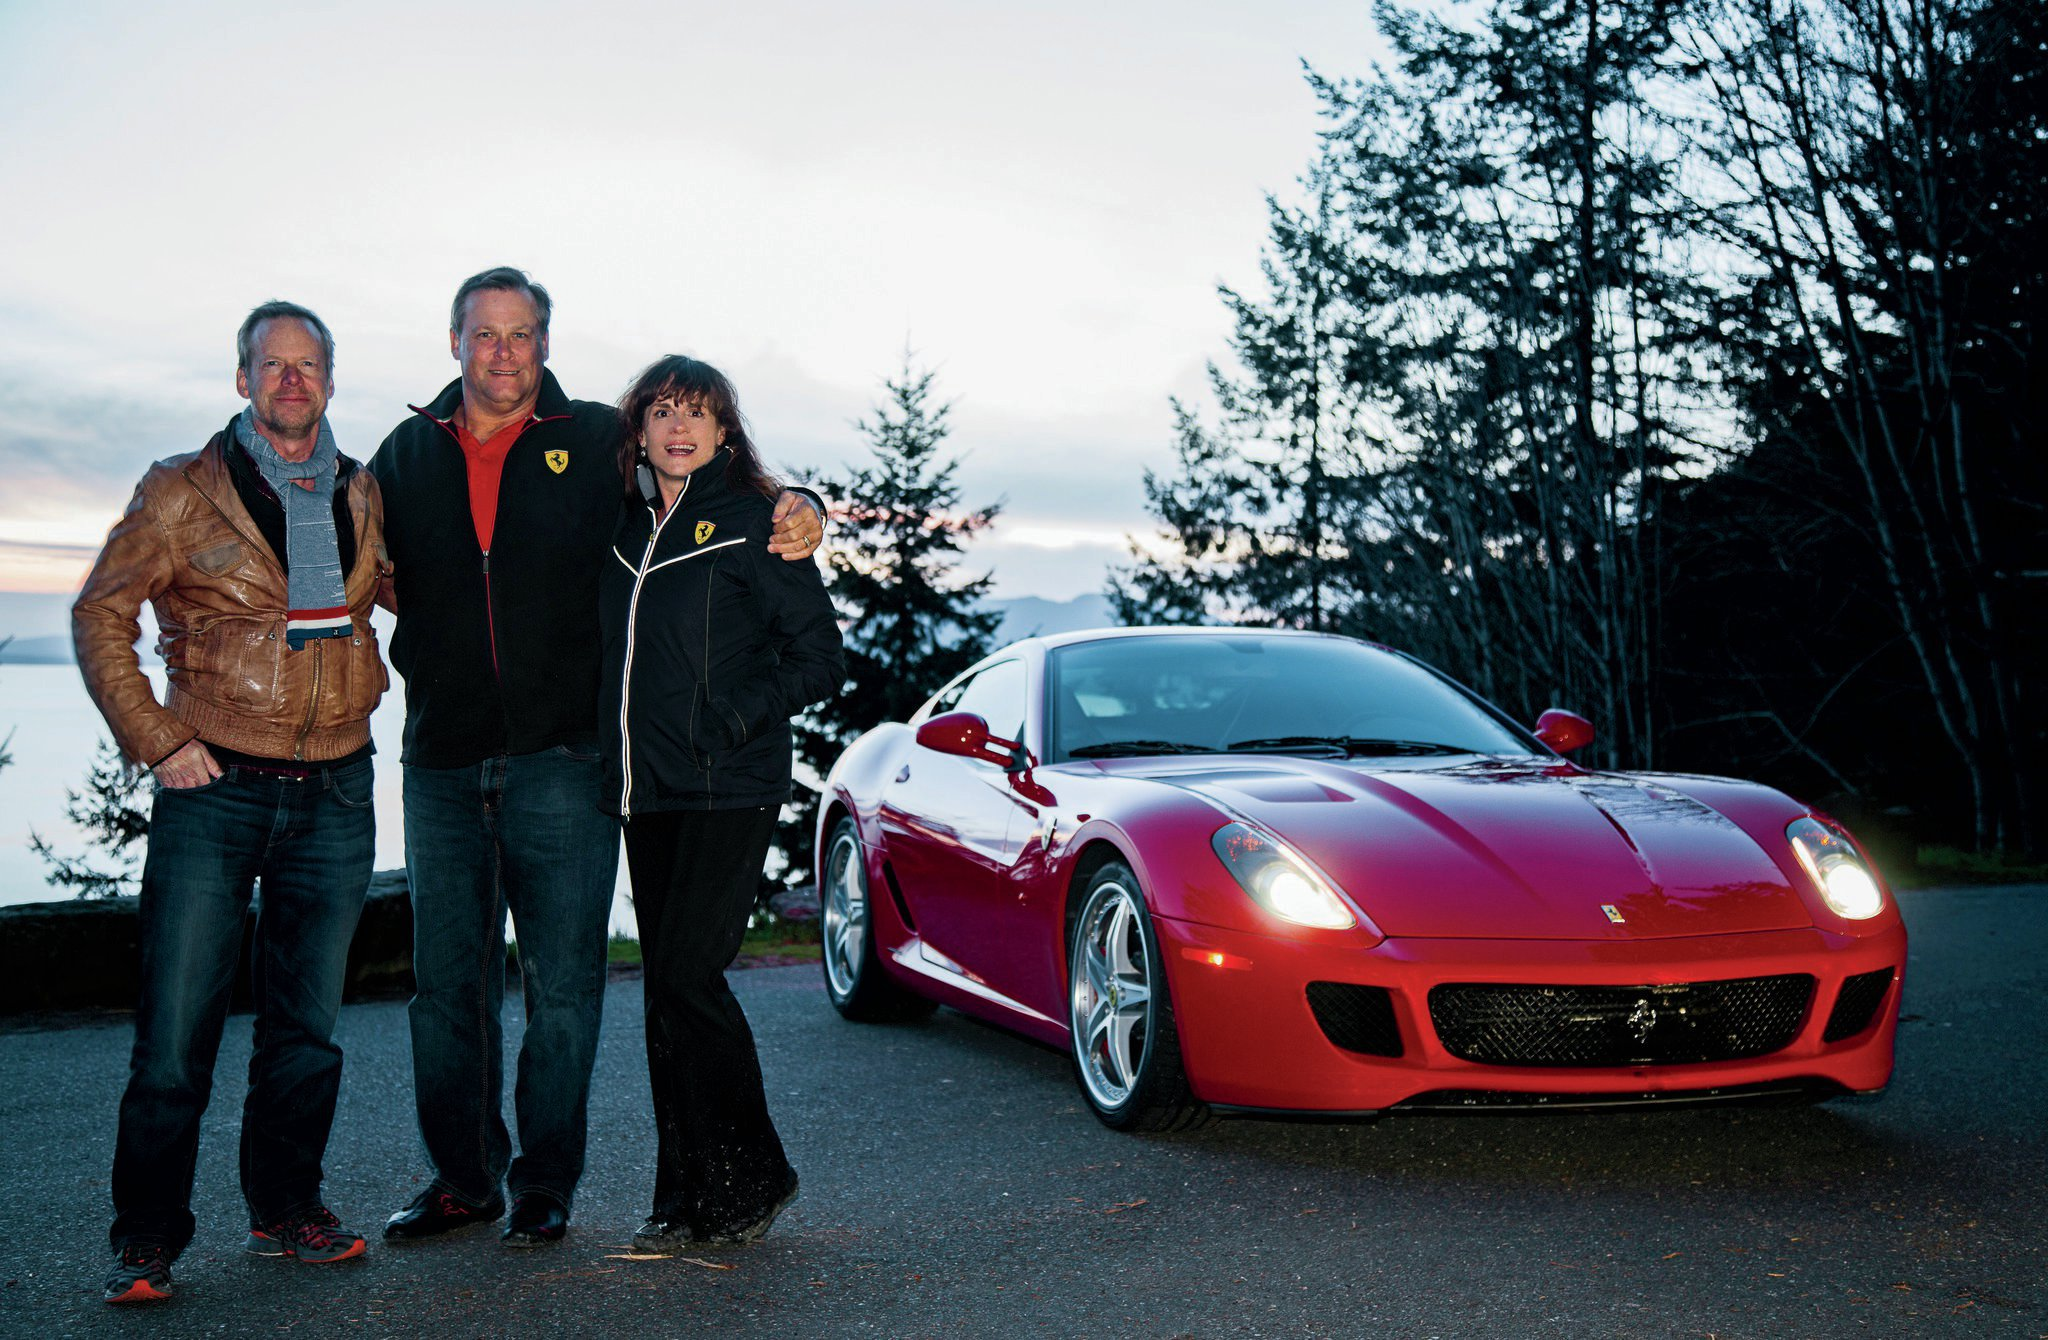 2018 ferrari 599. simple ferrari north by northwest adventure owners brian and tawnee walley shared their ferrari  599 with the author who spurred 612 v12 horses oldfashioned way throughout 2018 ferrari